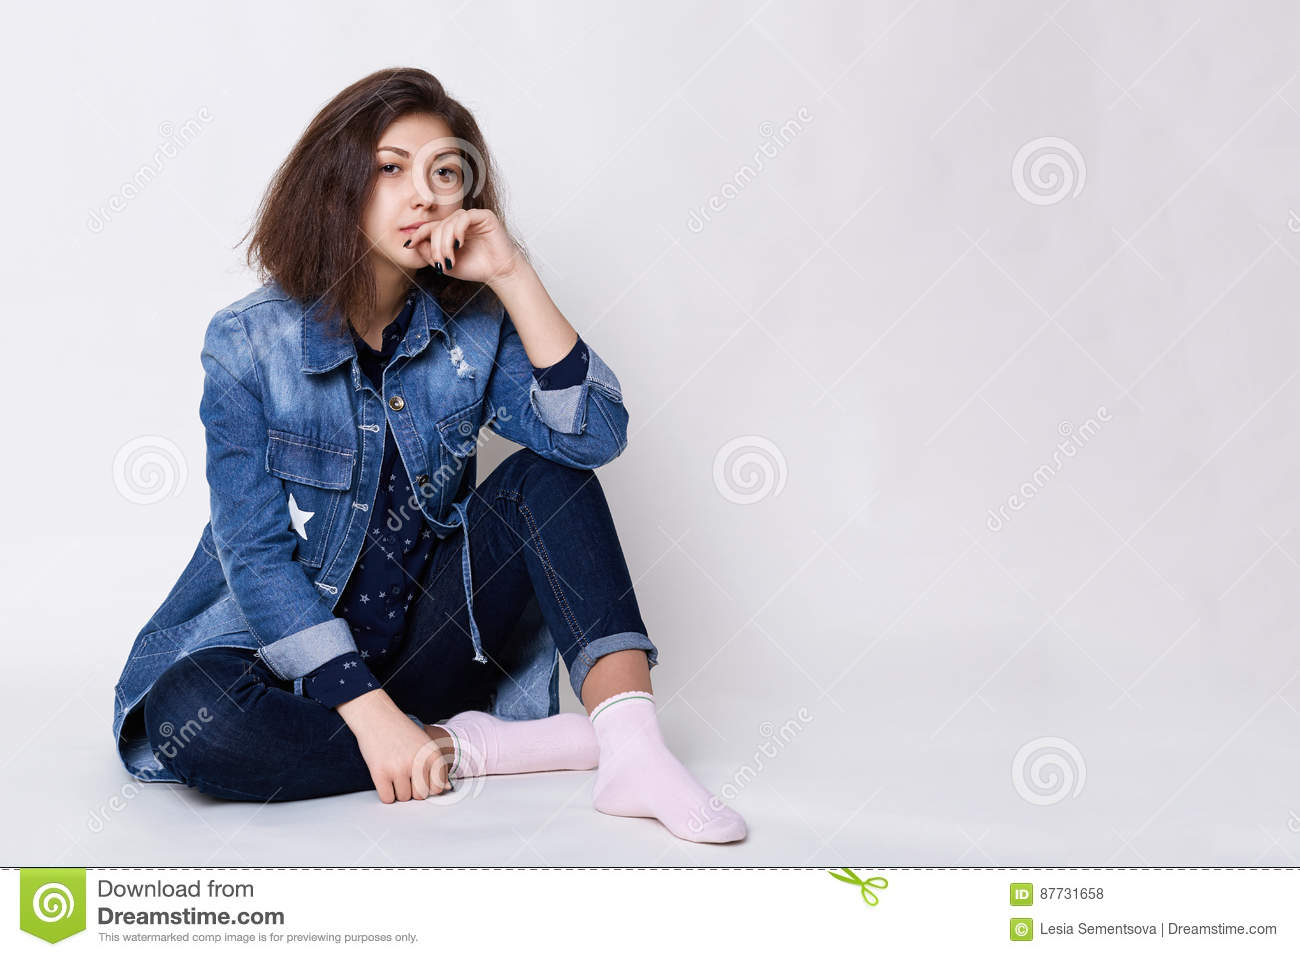 Young Beautiful Woman With Stylish Hairstyle Wearing Jean Clothes